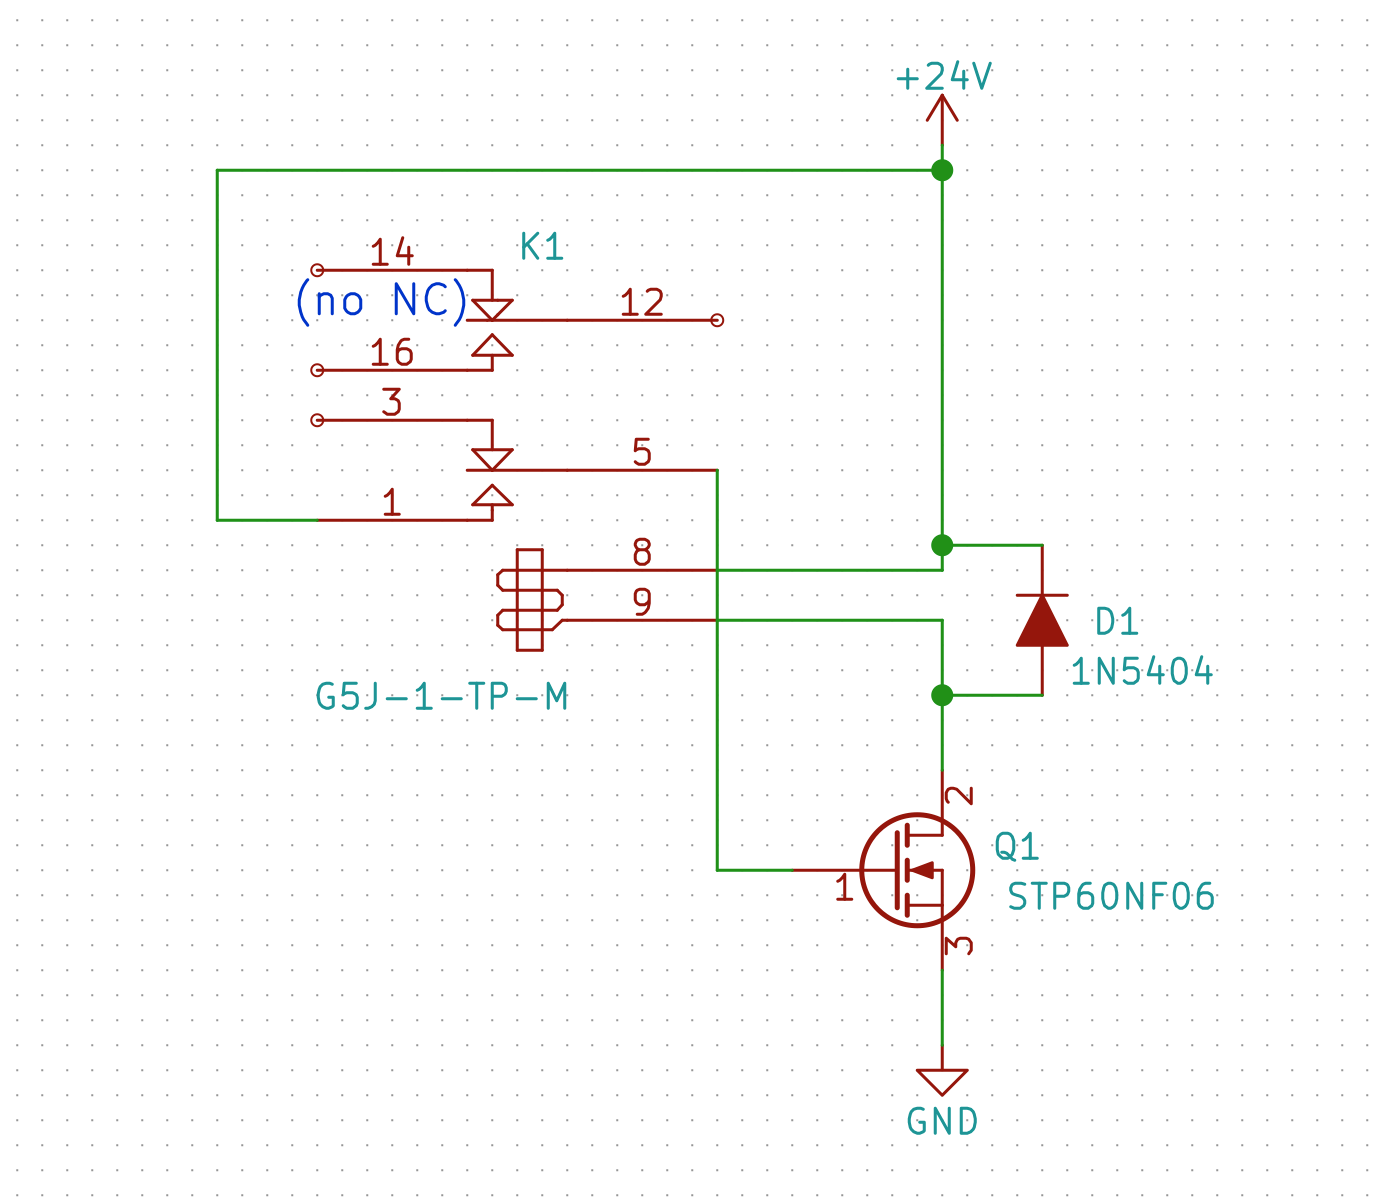 High Voltage Ac Generation Using Relays R X Seger Medium Alternating Current Generator Diagram Of I Used A 1n5404 Diode Had Available Rated For 100 V Peak Reverse Datasheet Towards The Positive